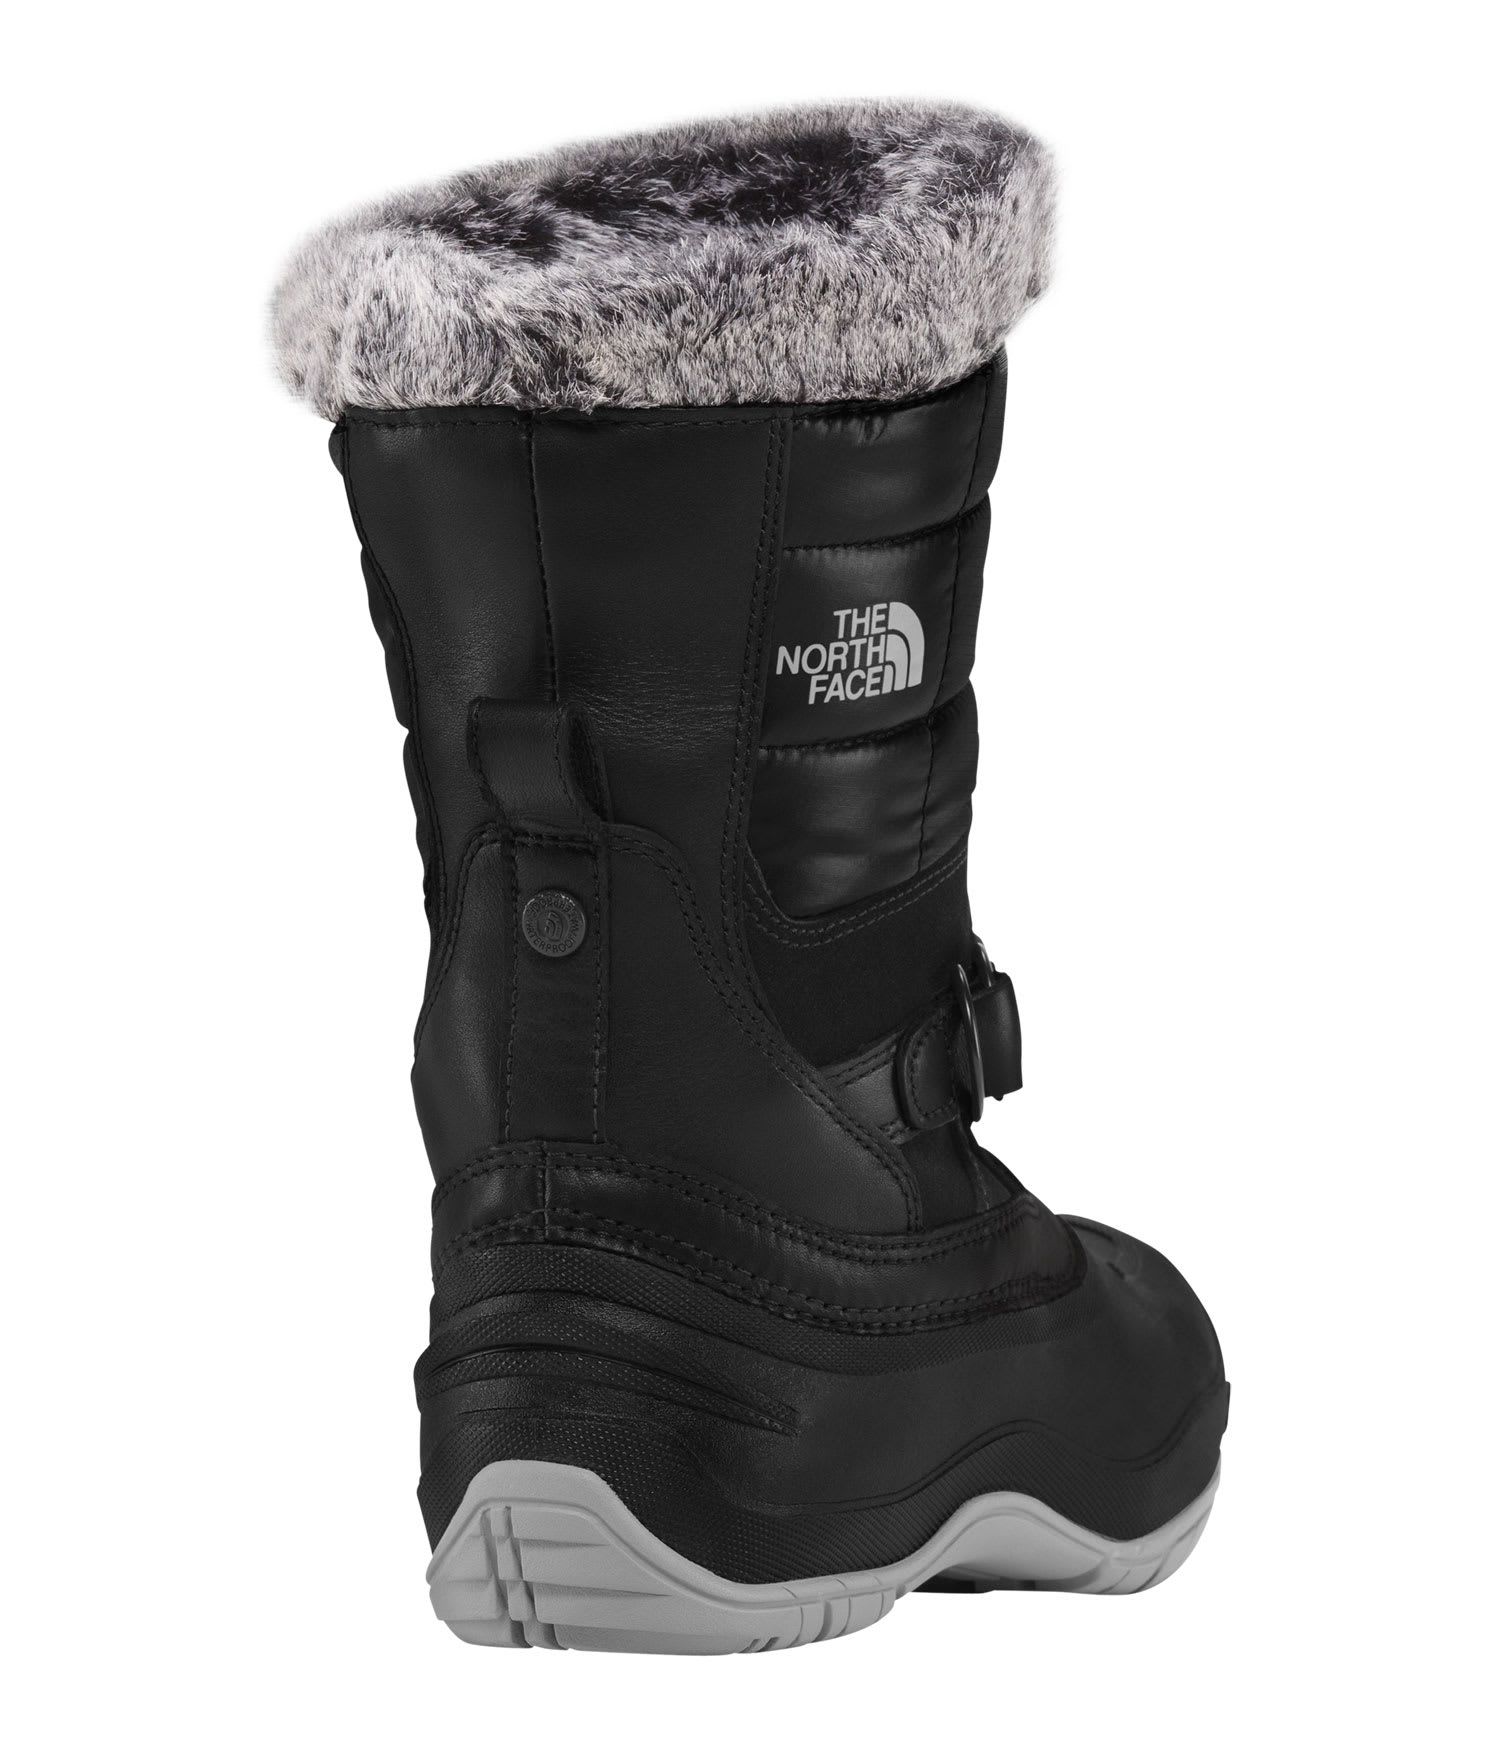 the north face shellista pull on boots womens. Black Bedroom Furniture Sets. Home Design Ideas